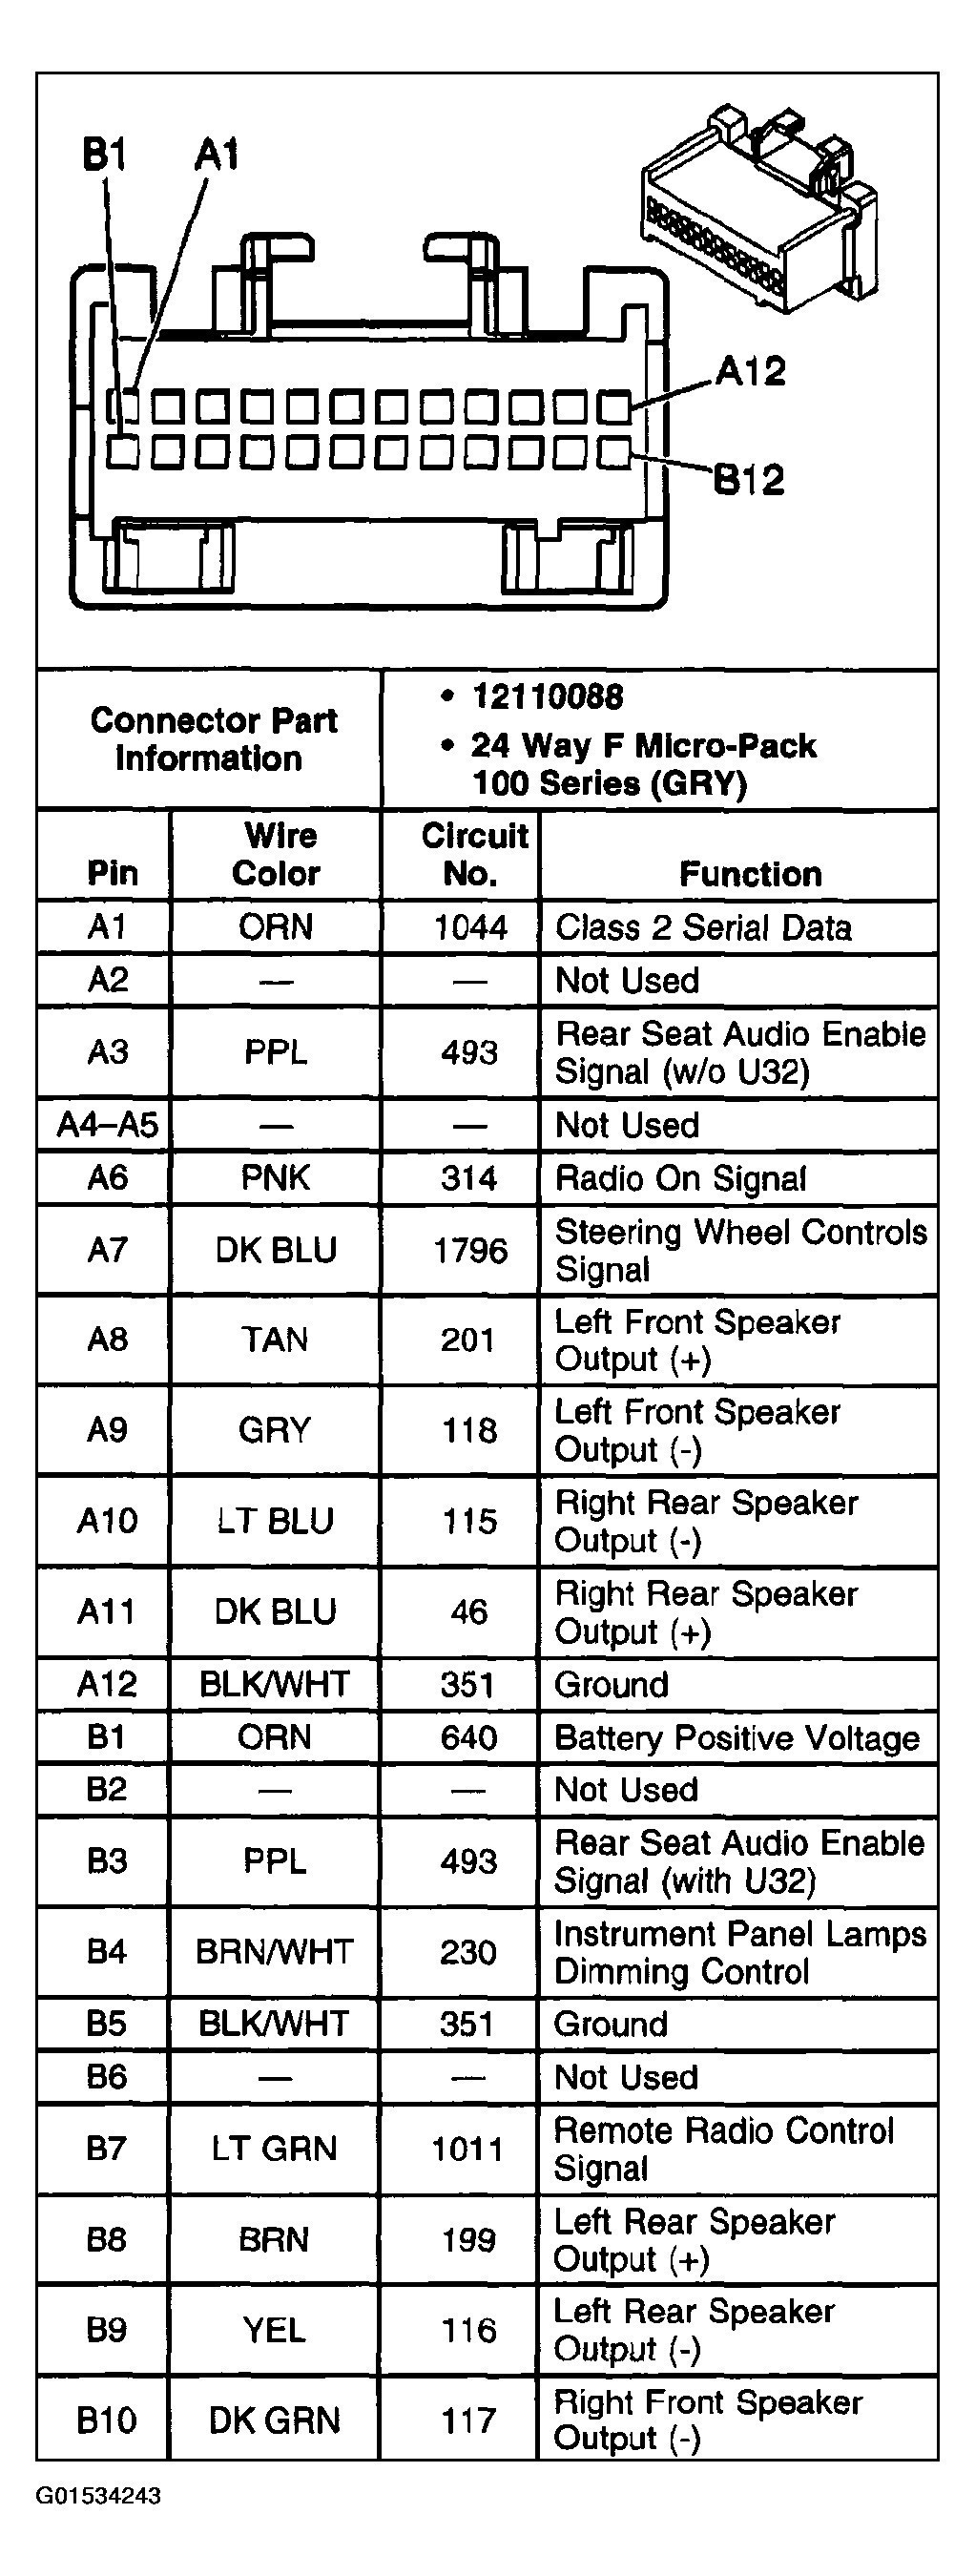 2001 Chevy Cavalier Radio Wiring Diagram from static-assets.imageservice.cloud